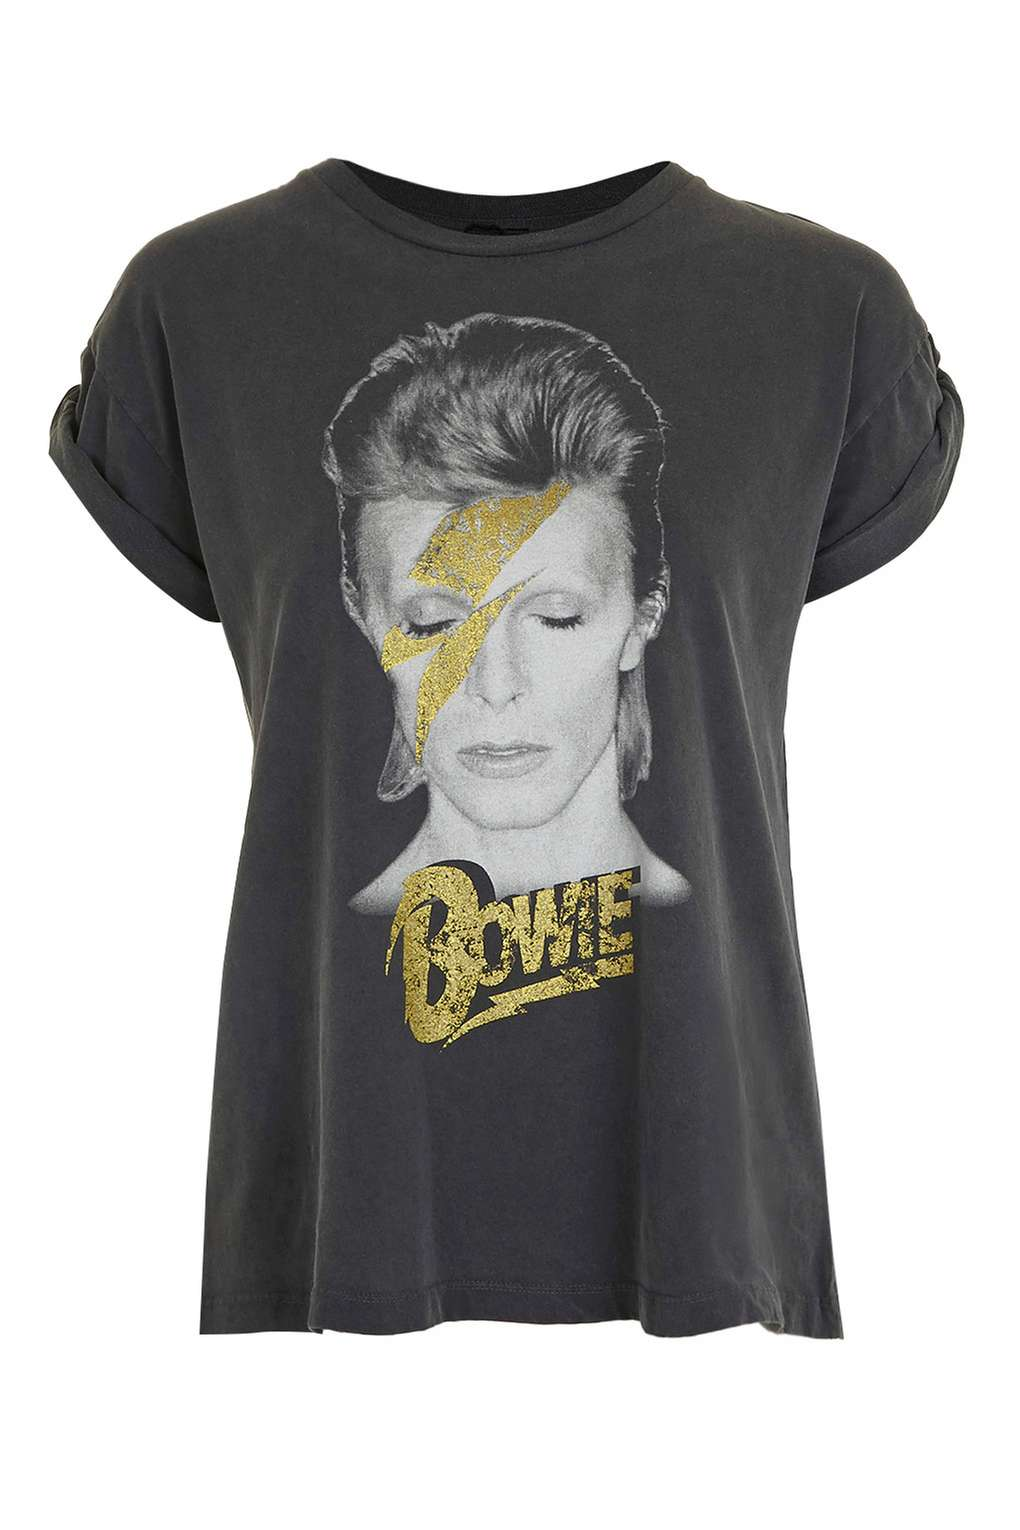 TOPSHOP BOWIE GRAPHIC TEE BY AND FINALLY